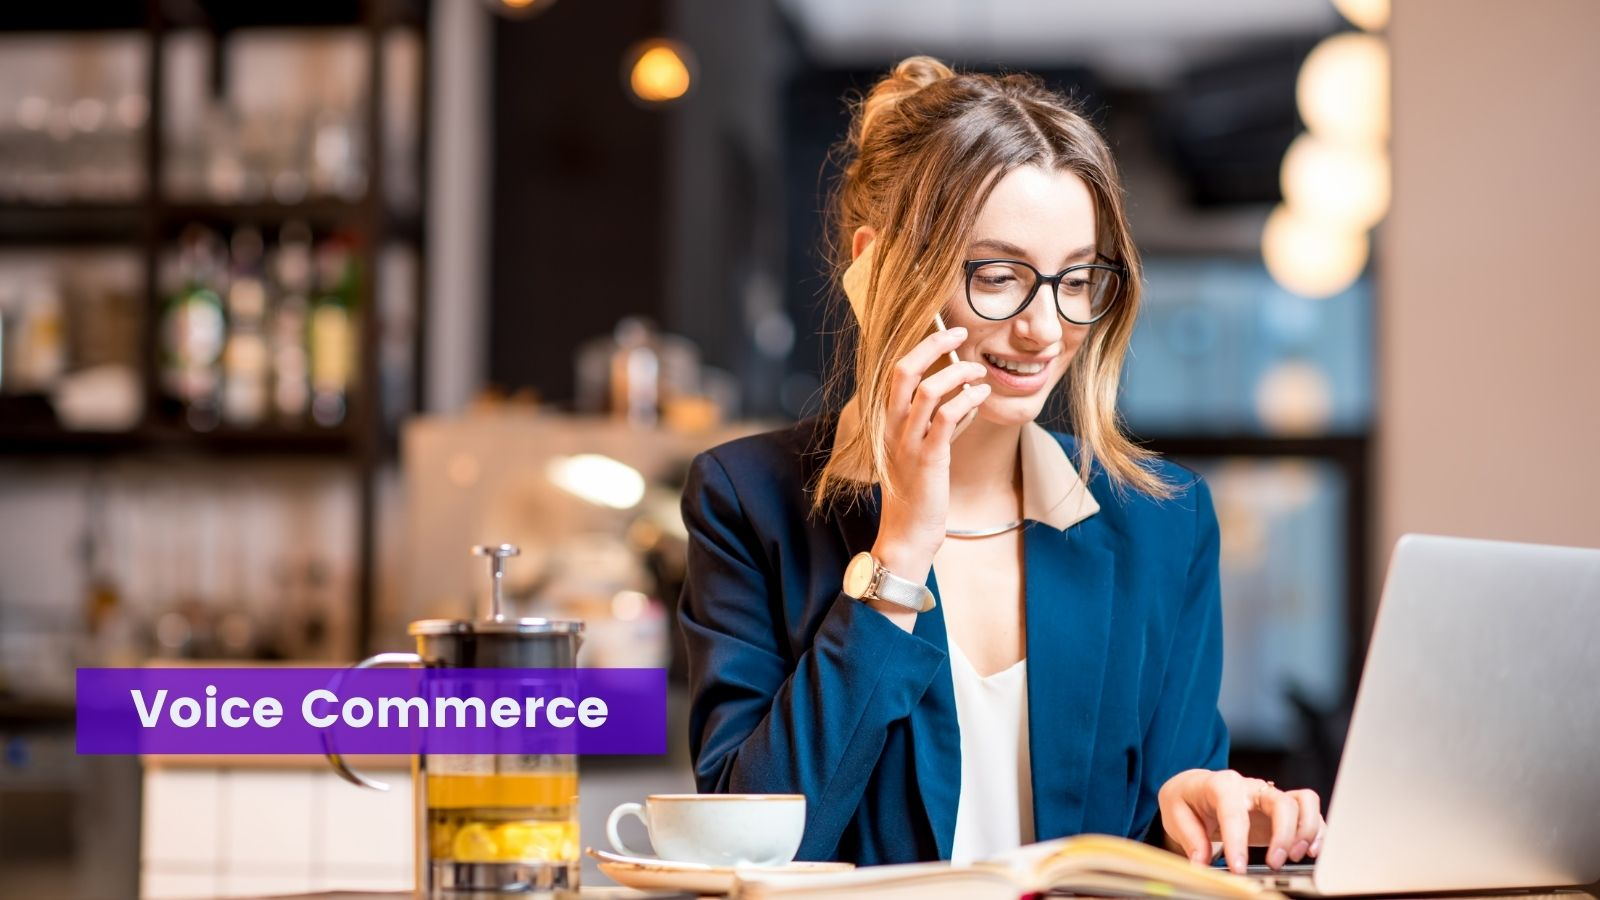 Woman using voice commerce on agilitycms.com